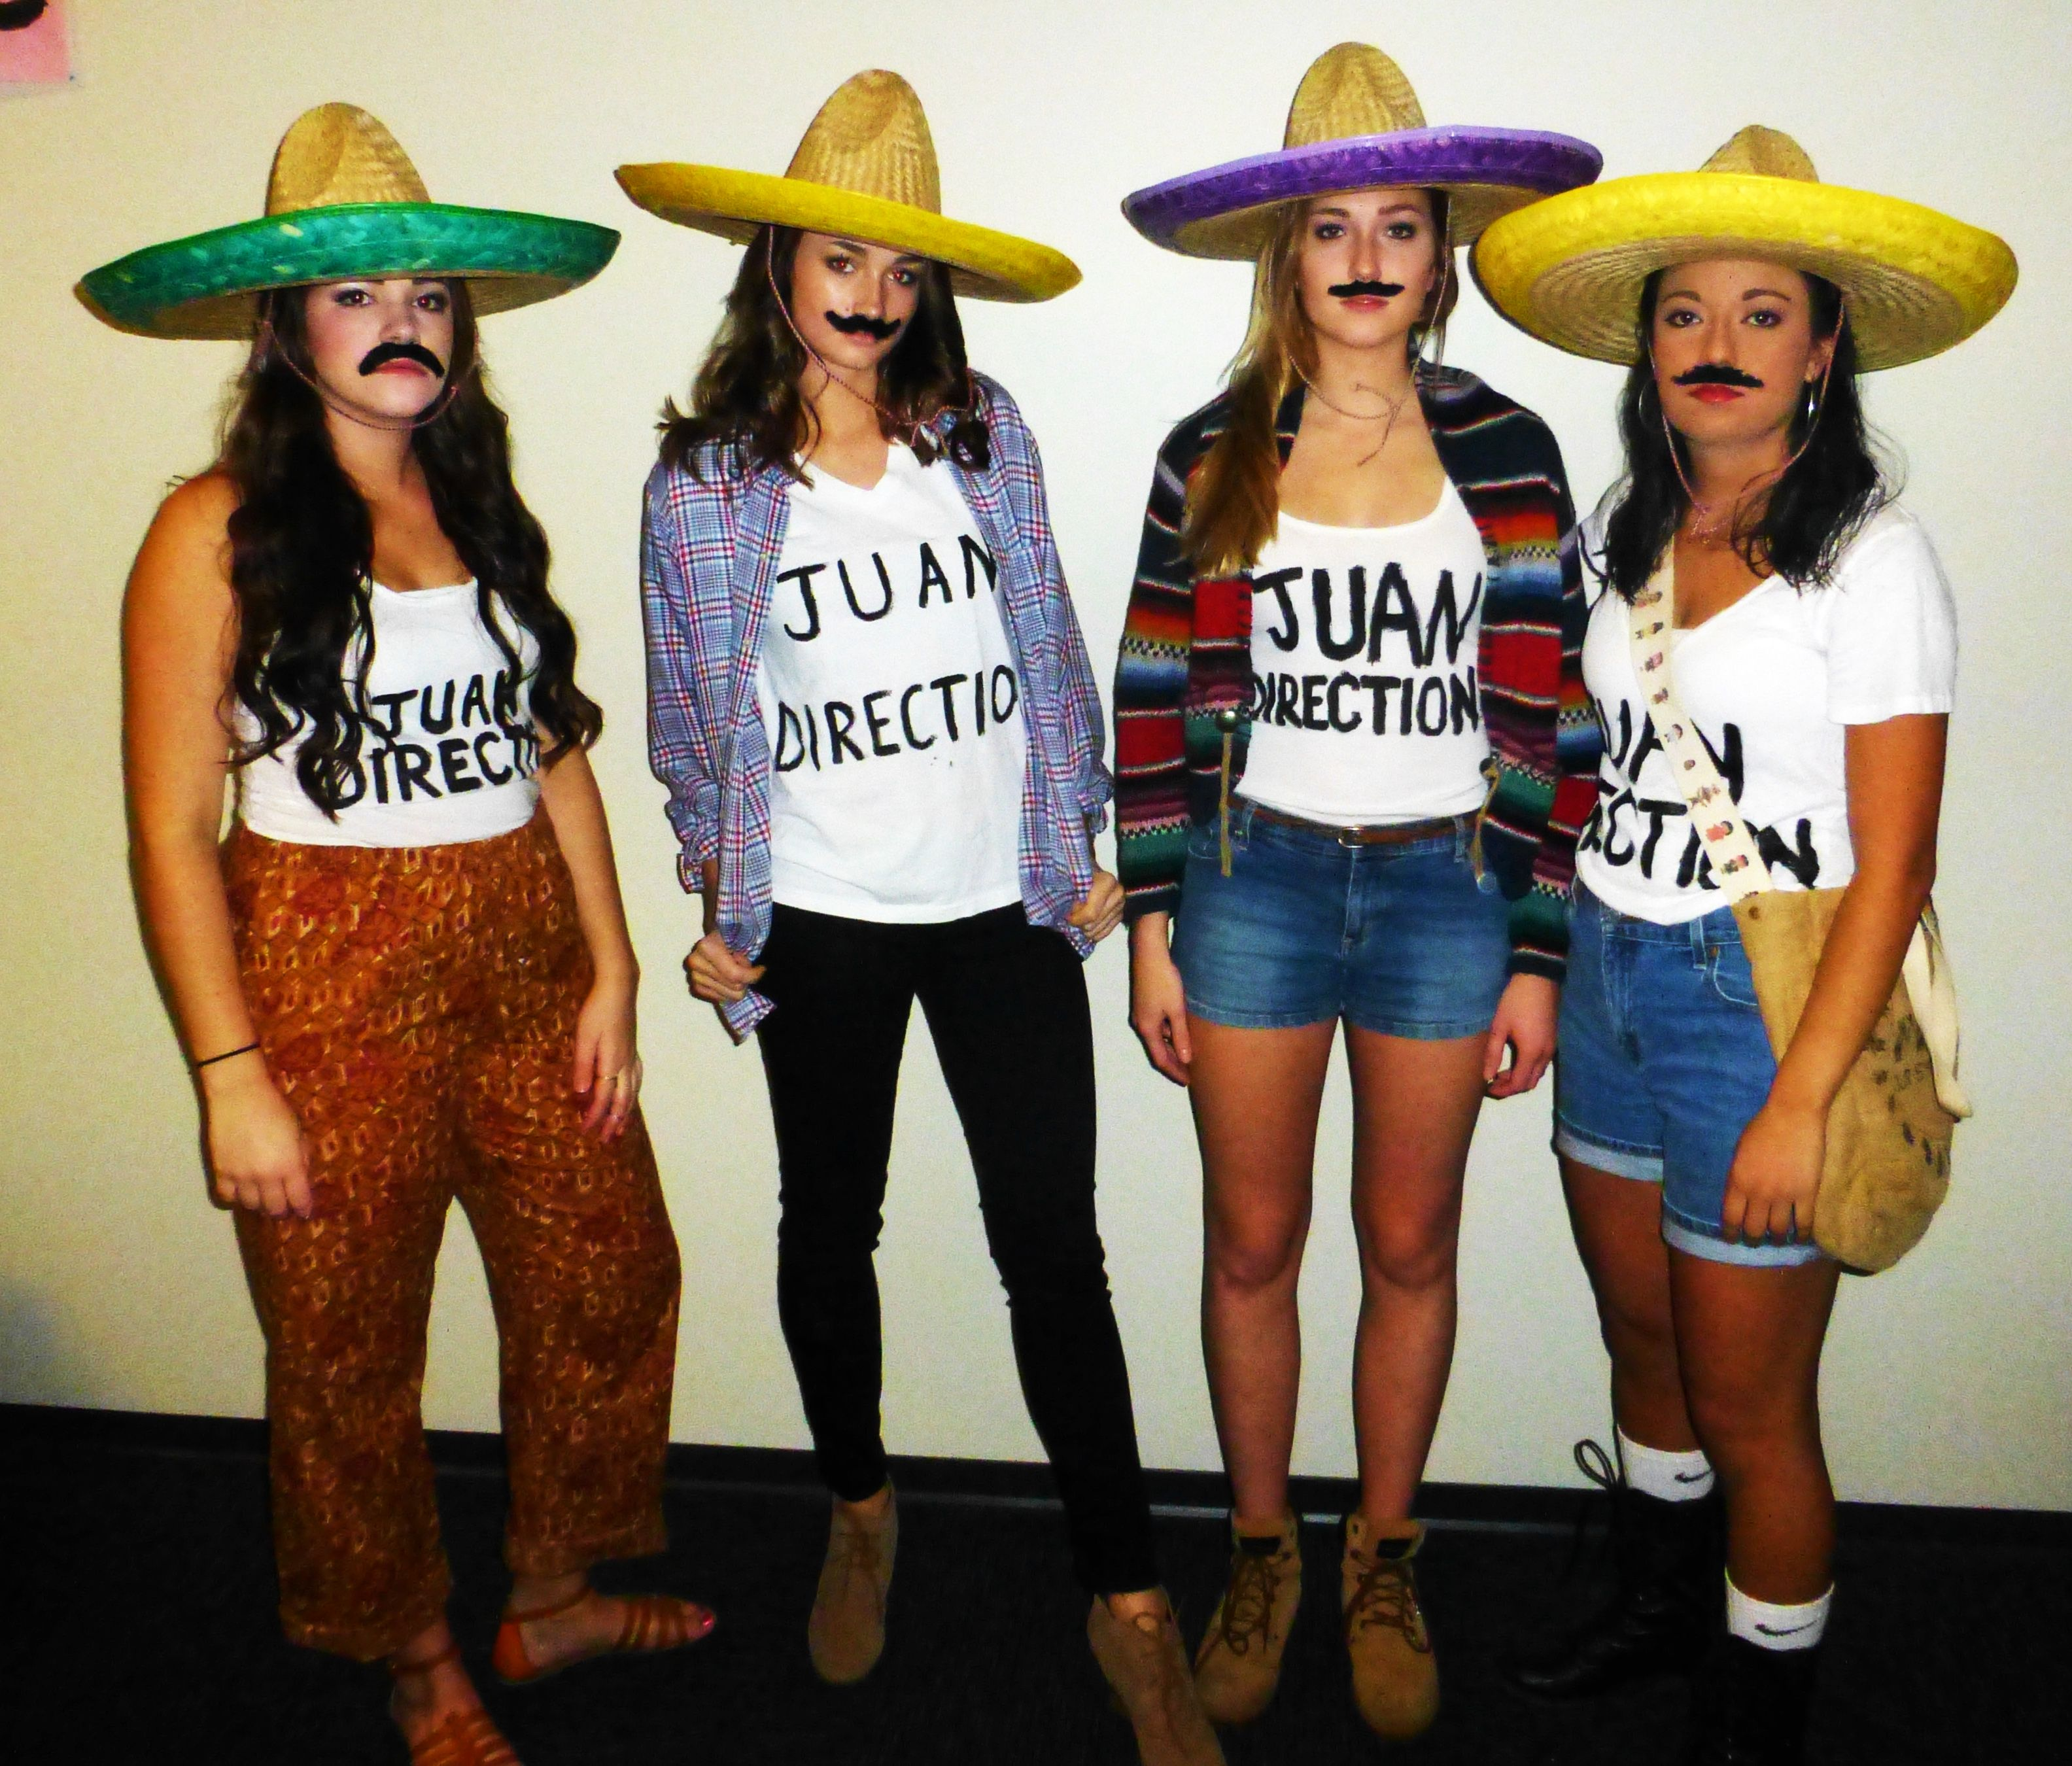 Wish i was going to be here for halloween, Juan Direction aka best ...